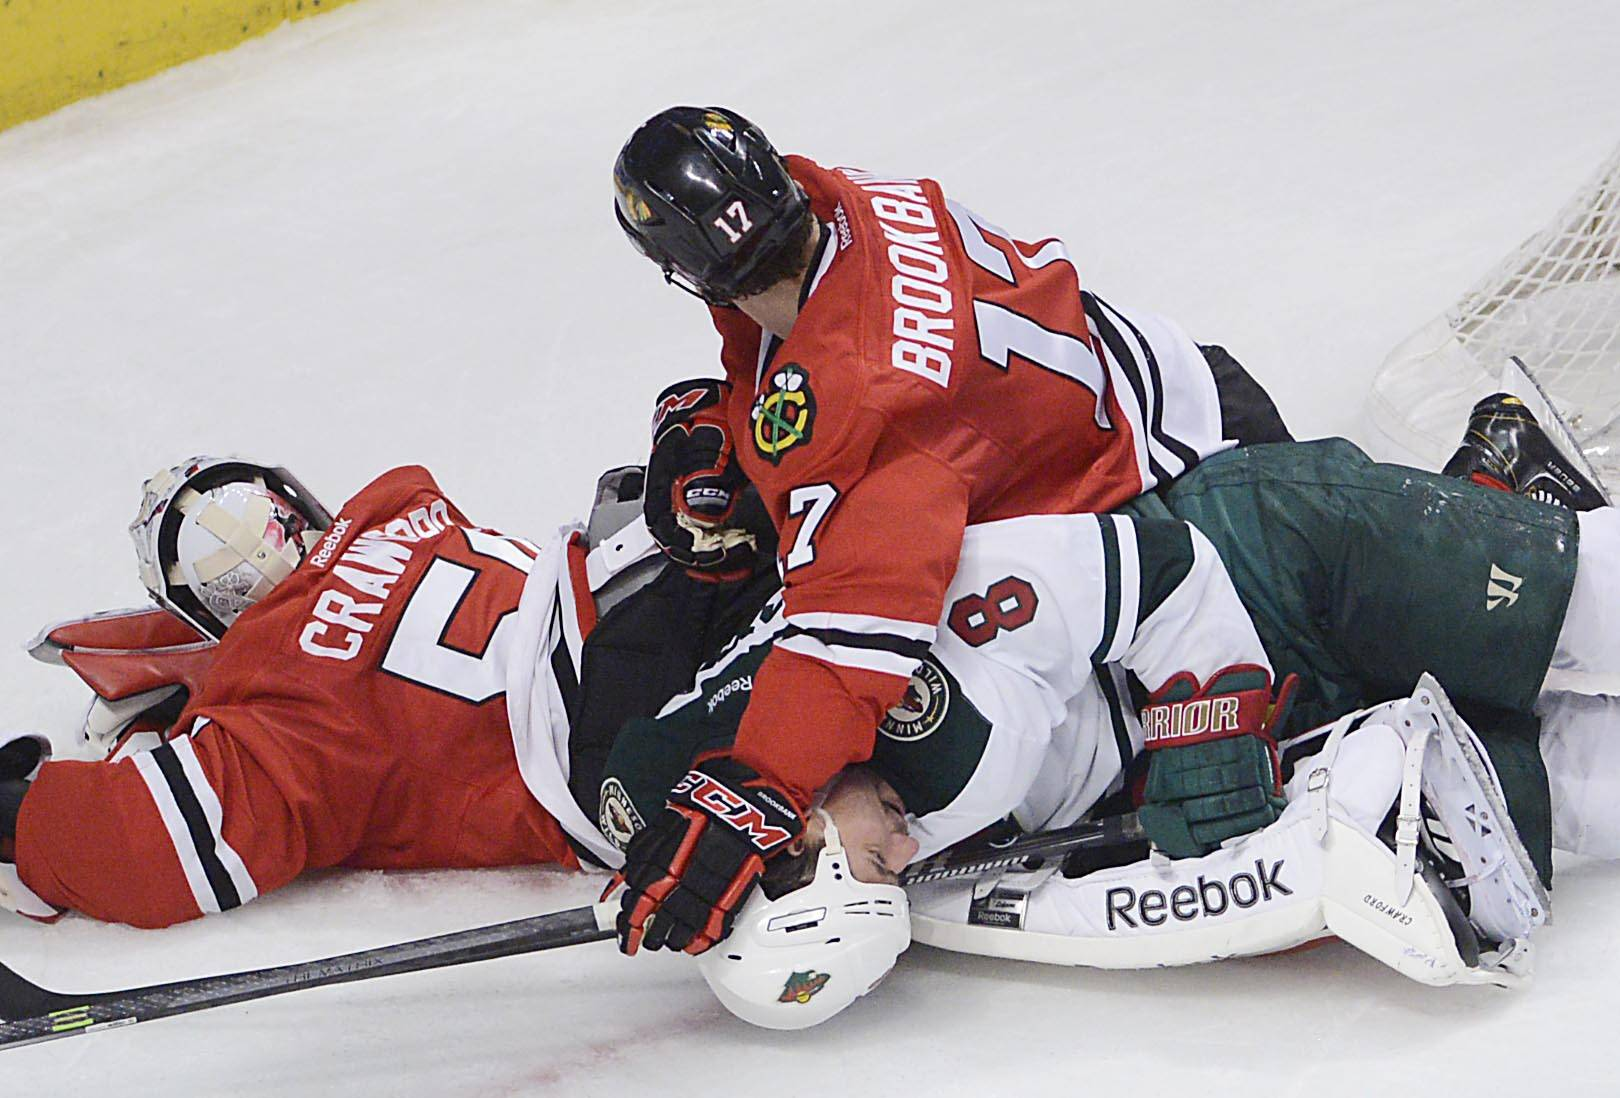 Chicago Blackhawks defenseman Sheldon Brookbank pushes Minnesota Wild center Cody McCormick to the ice on top of goalie Corey Crawford in the second period.